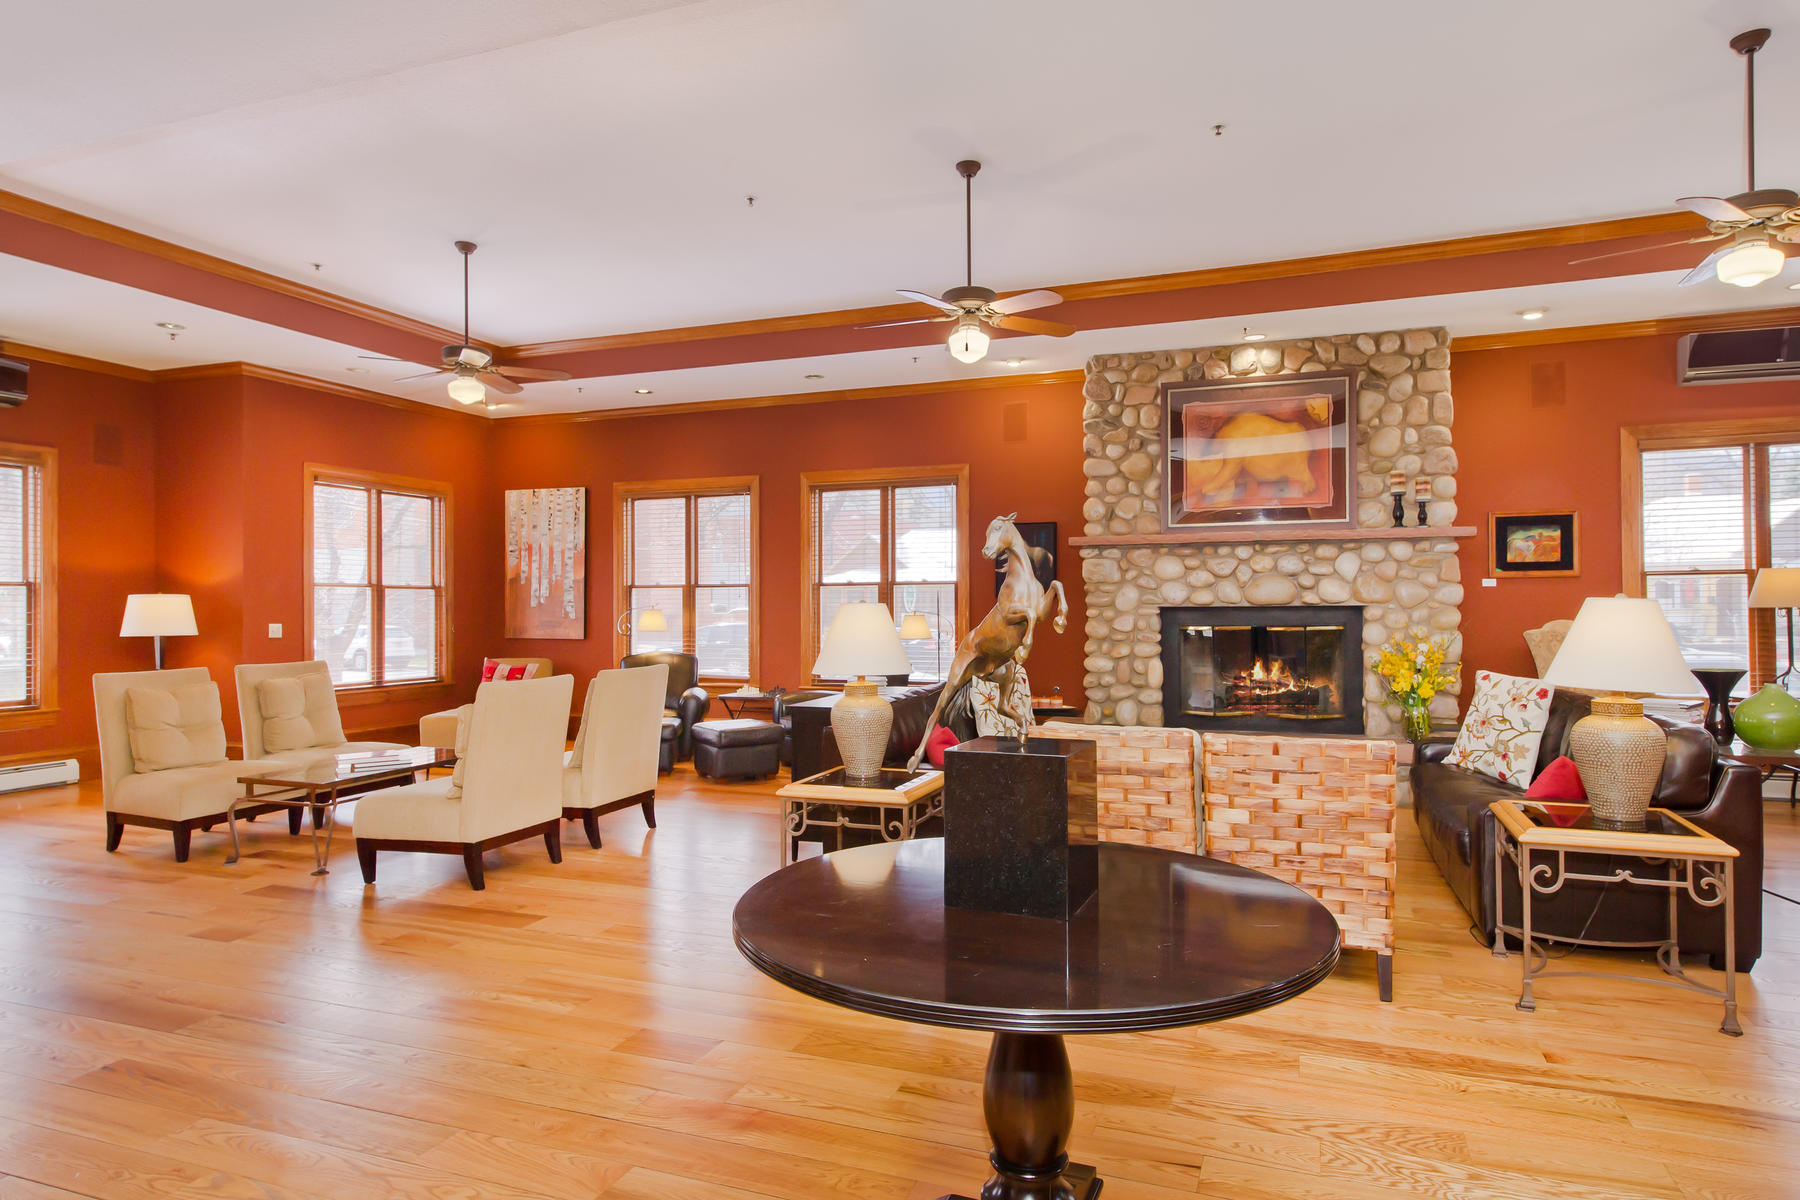 Additional photo for property listing at The Bradley Boulder Inn 2040 16th St Boulder, Colorado 80302 United States